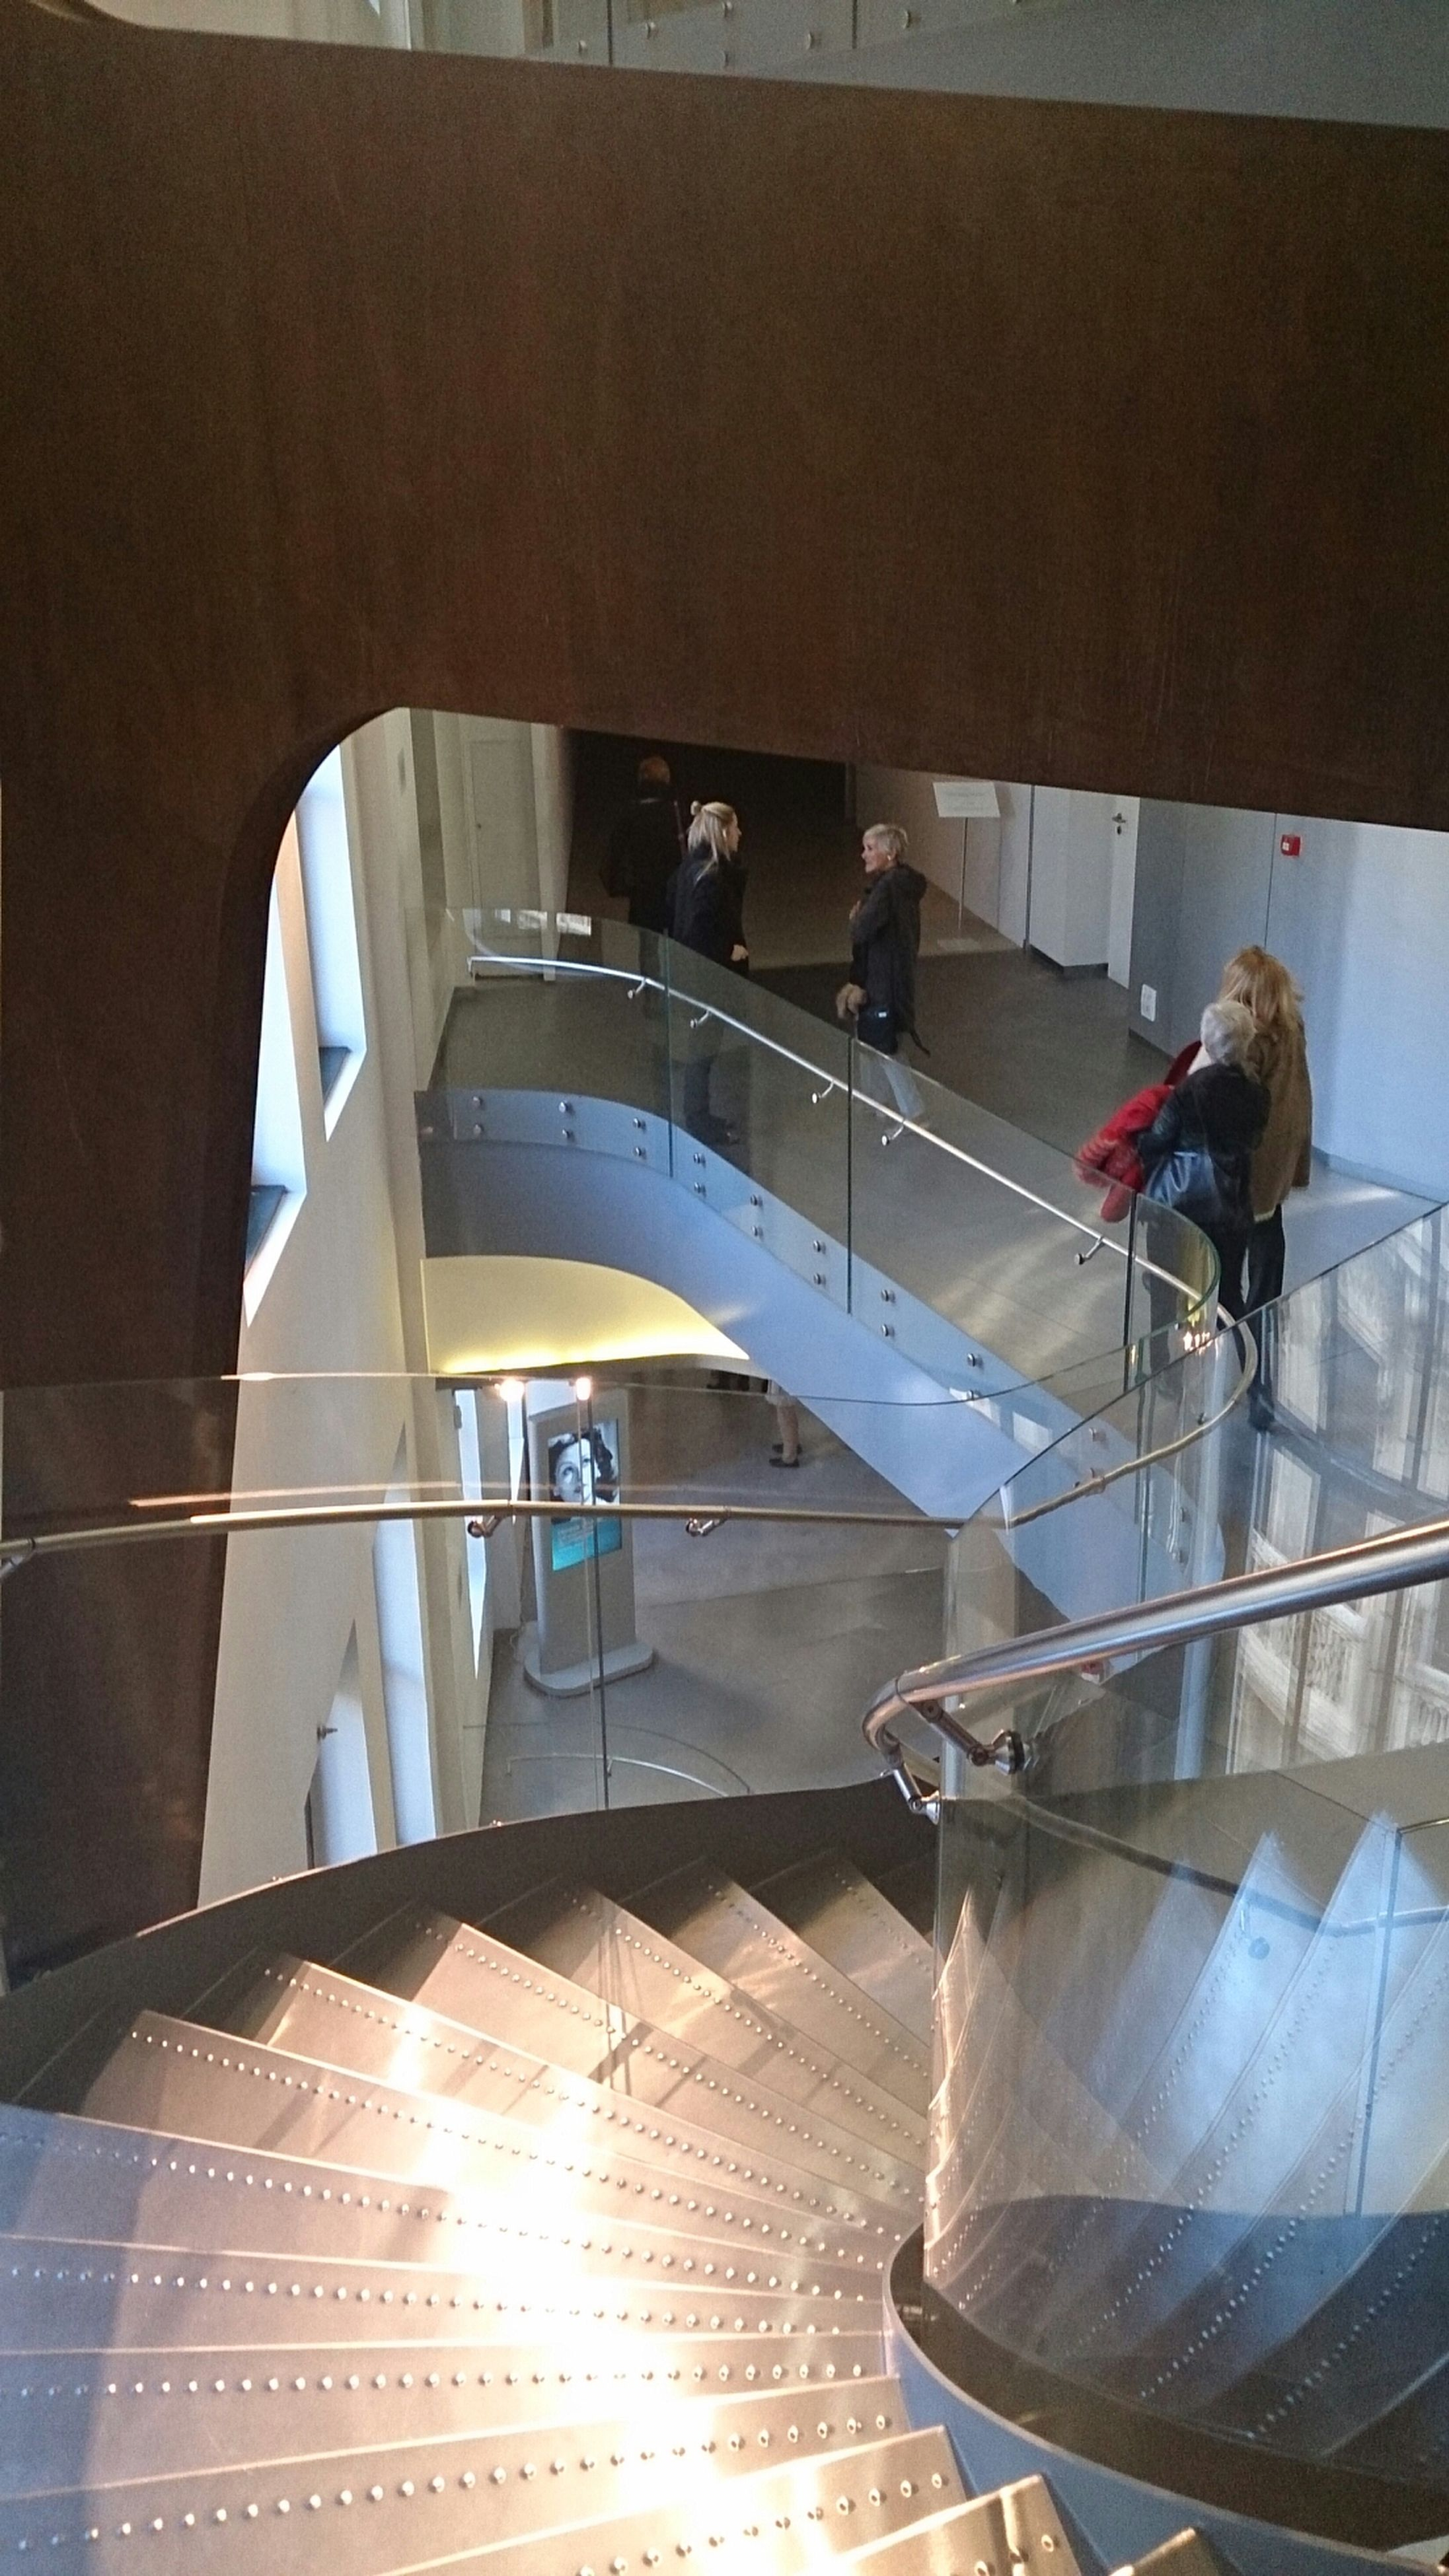 indoors, steps, men, steps and staircases, high angle view, architecture, built structure, staircase, lifestyles, railing, person, full length, leisure activity, sitting, sunlight, rear view, transportation, reflection